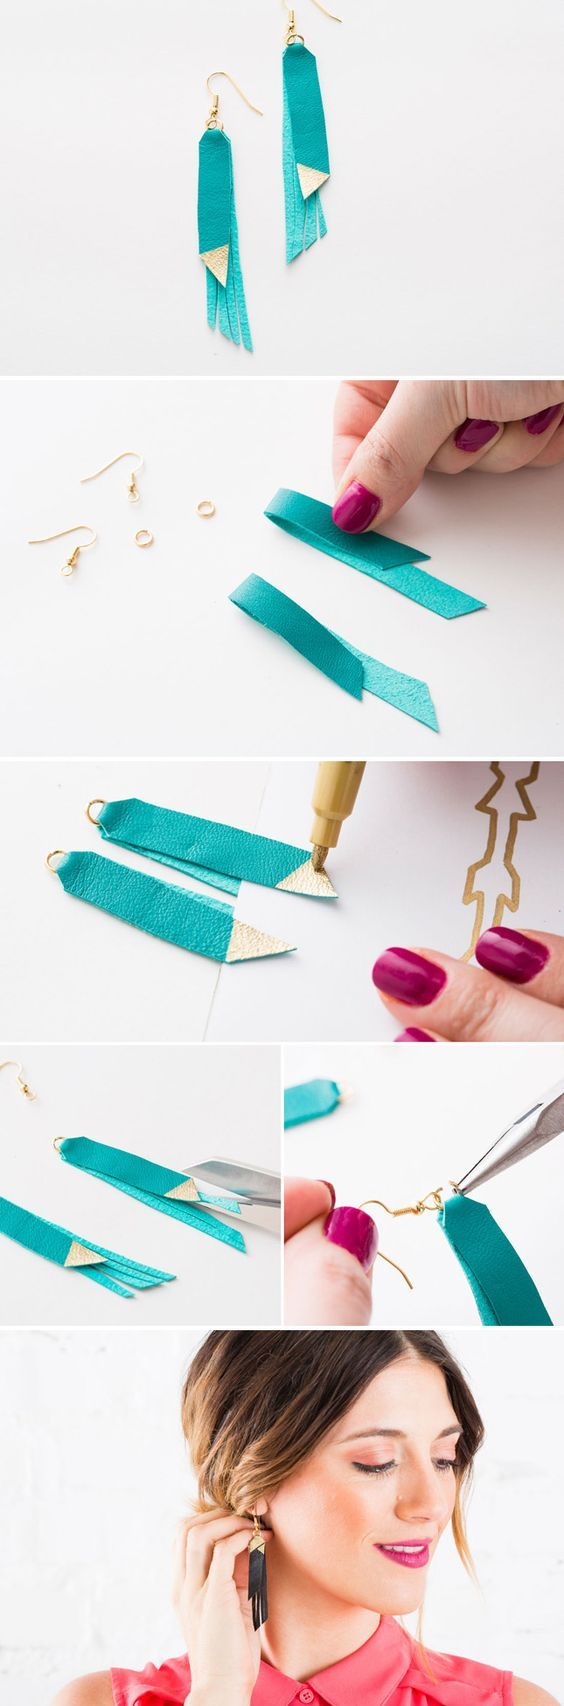 Make your own leather fringe jewelry with this kit. Buy it here: http://go.brit.co/1zQFdUr: